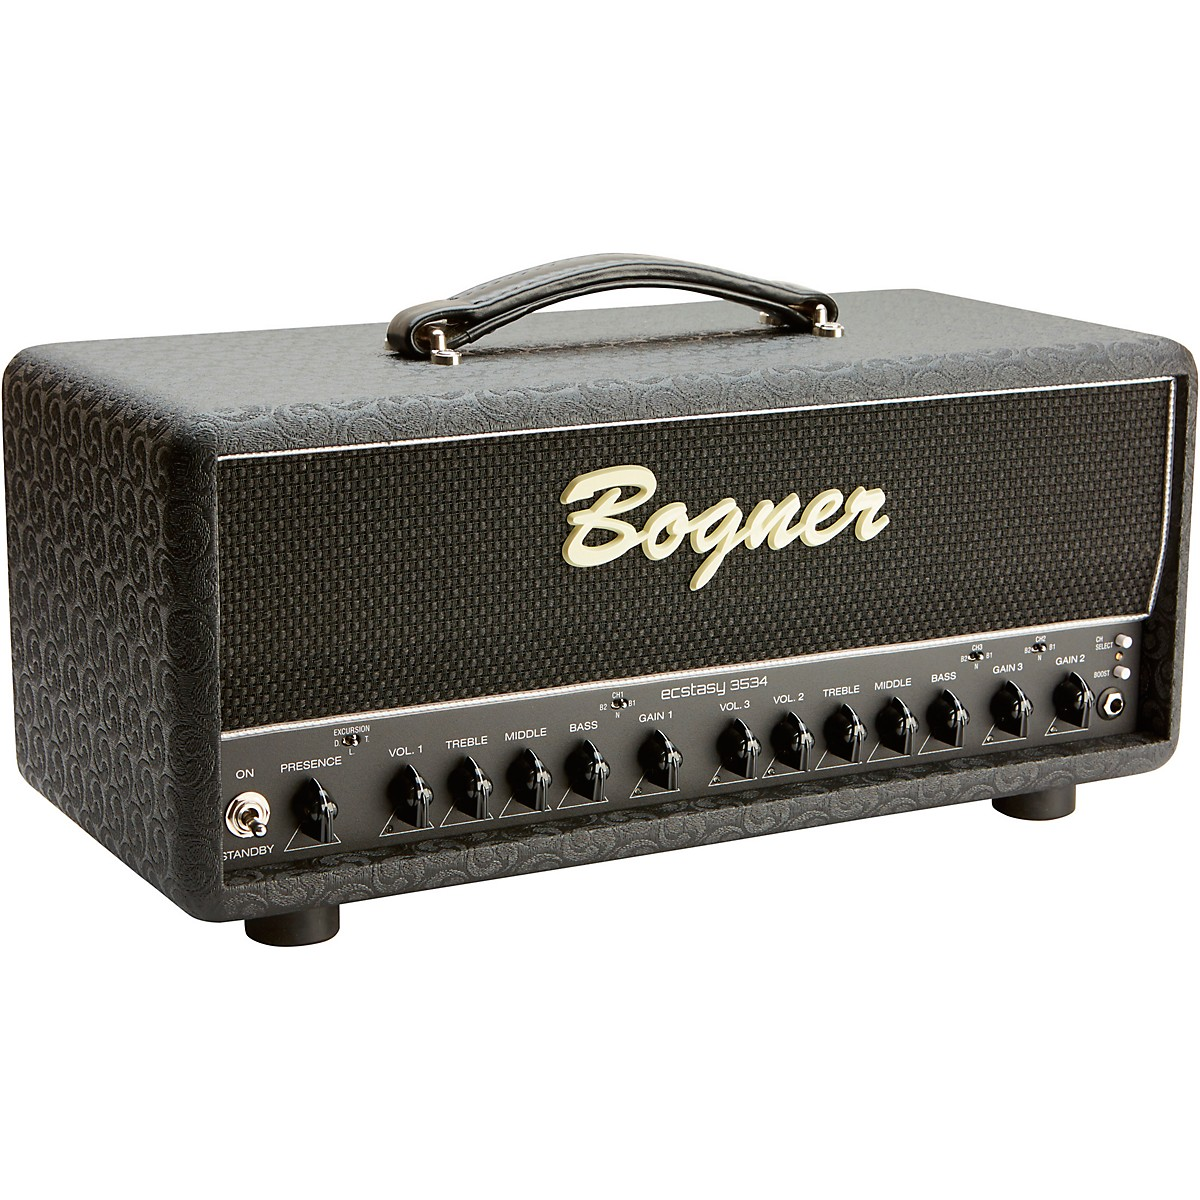 Bogner Ecstasy 3534 35W Tube Guitar Amp Head